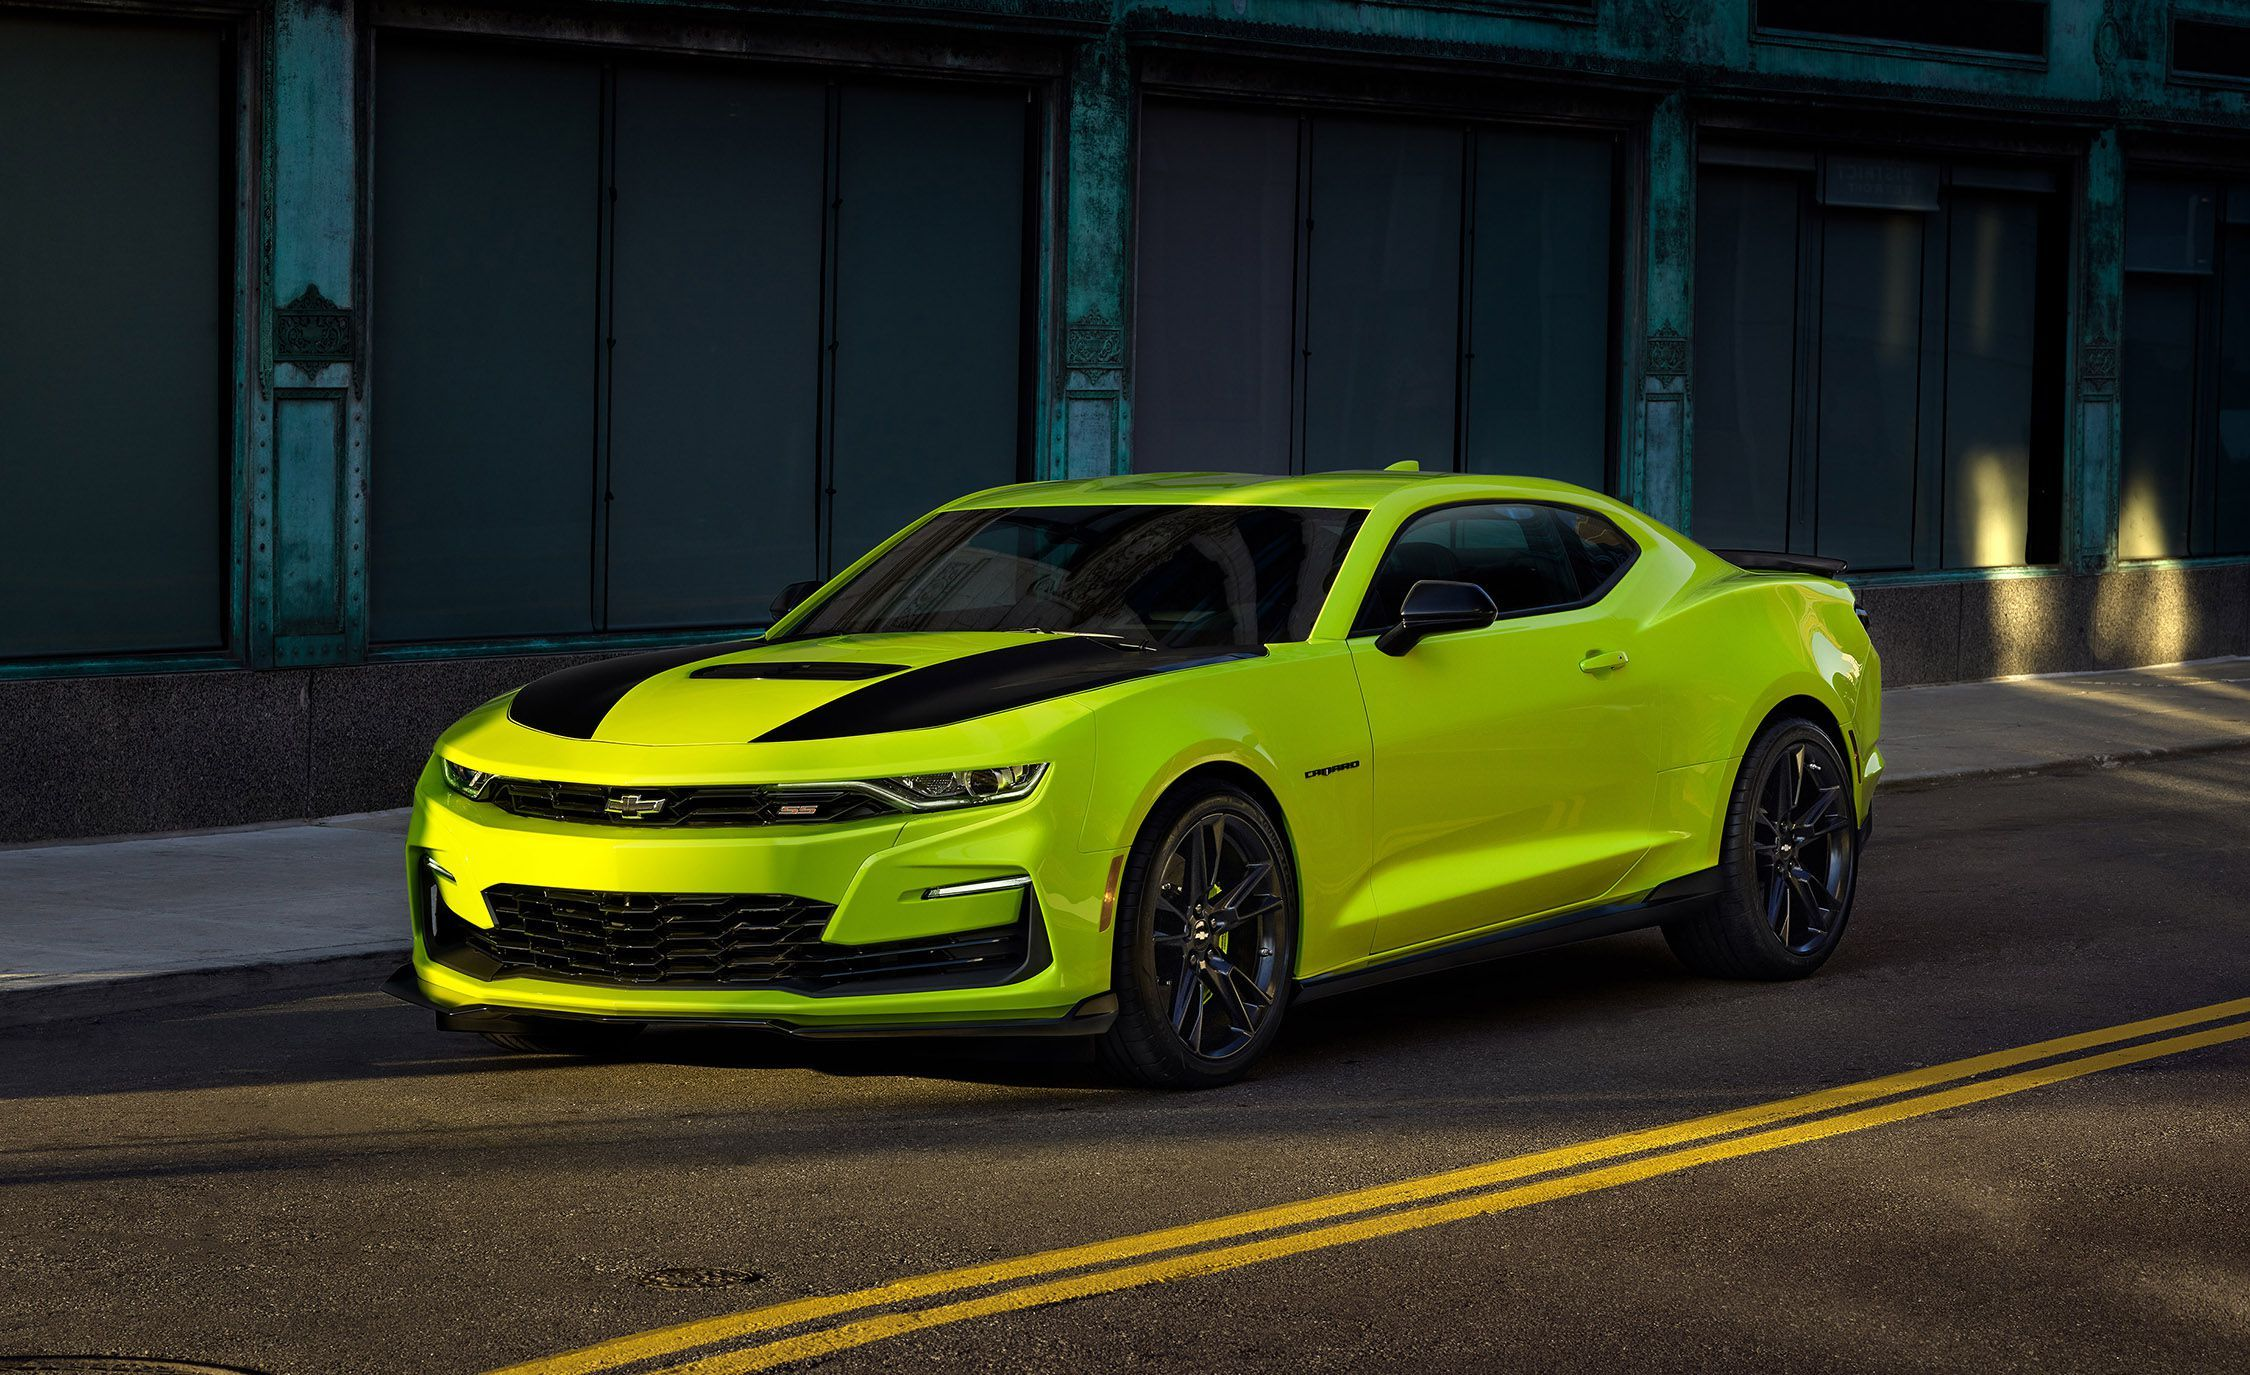 The 2019 Chevrolet Camaro Is Adding This Insane Yellow To Its Color Palette Chevrolet Camaro